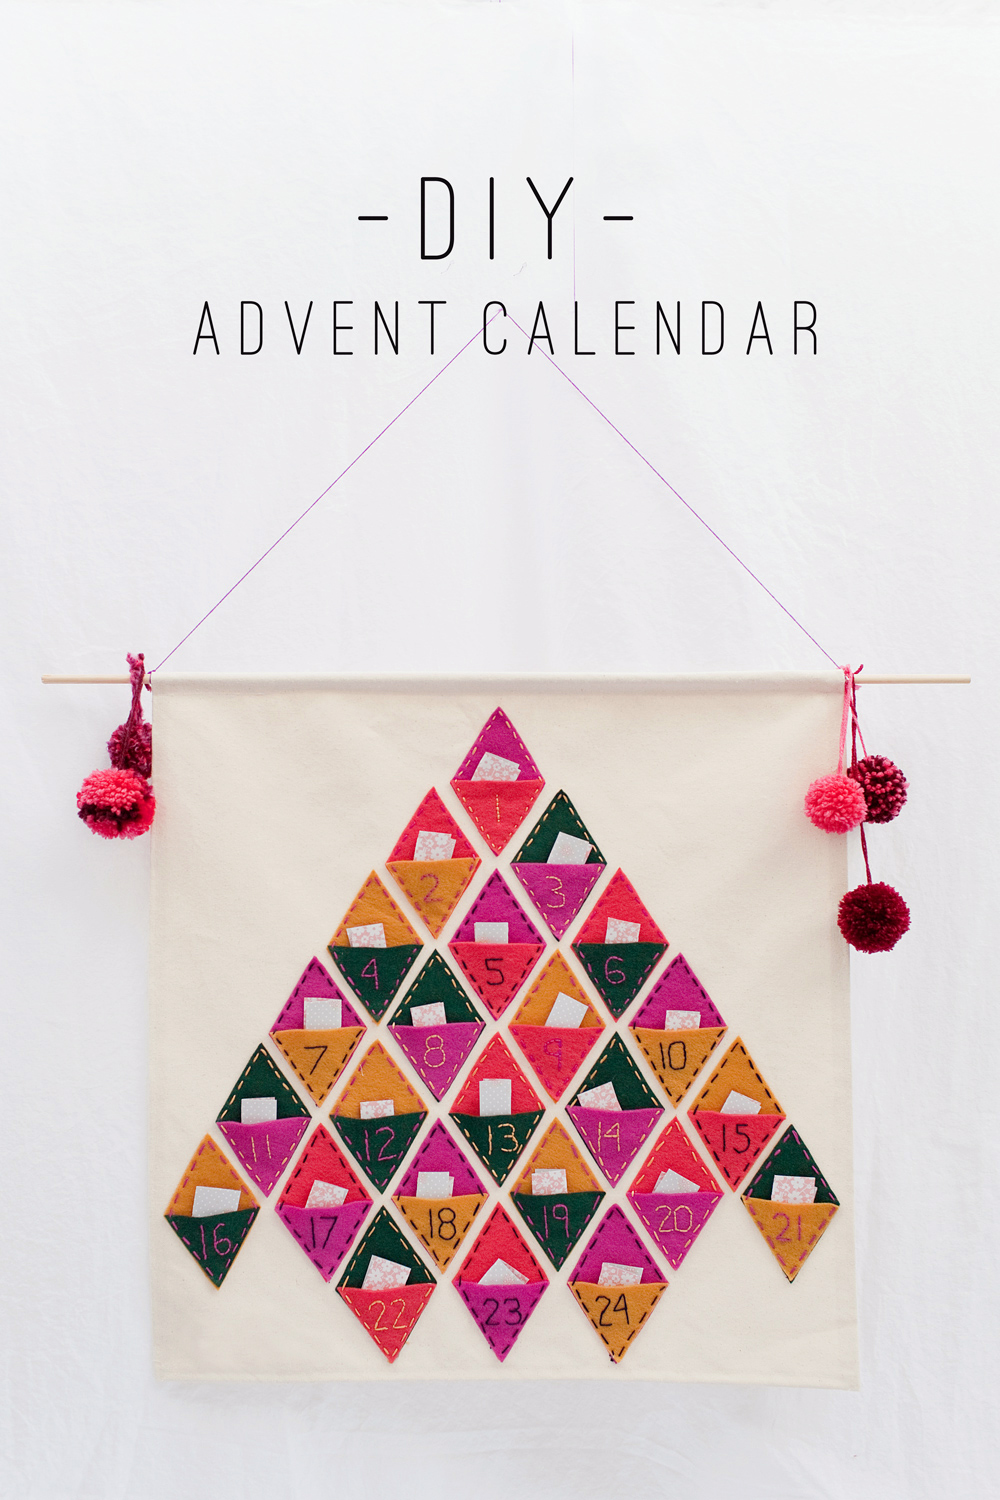 Diy Advent Calendar For Adults : Tell diy advent calendar tell love and party